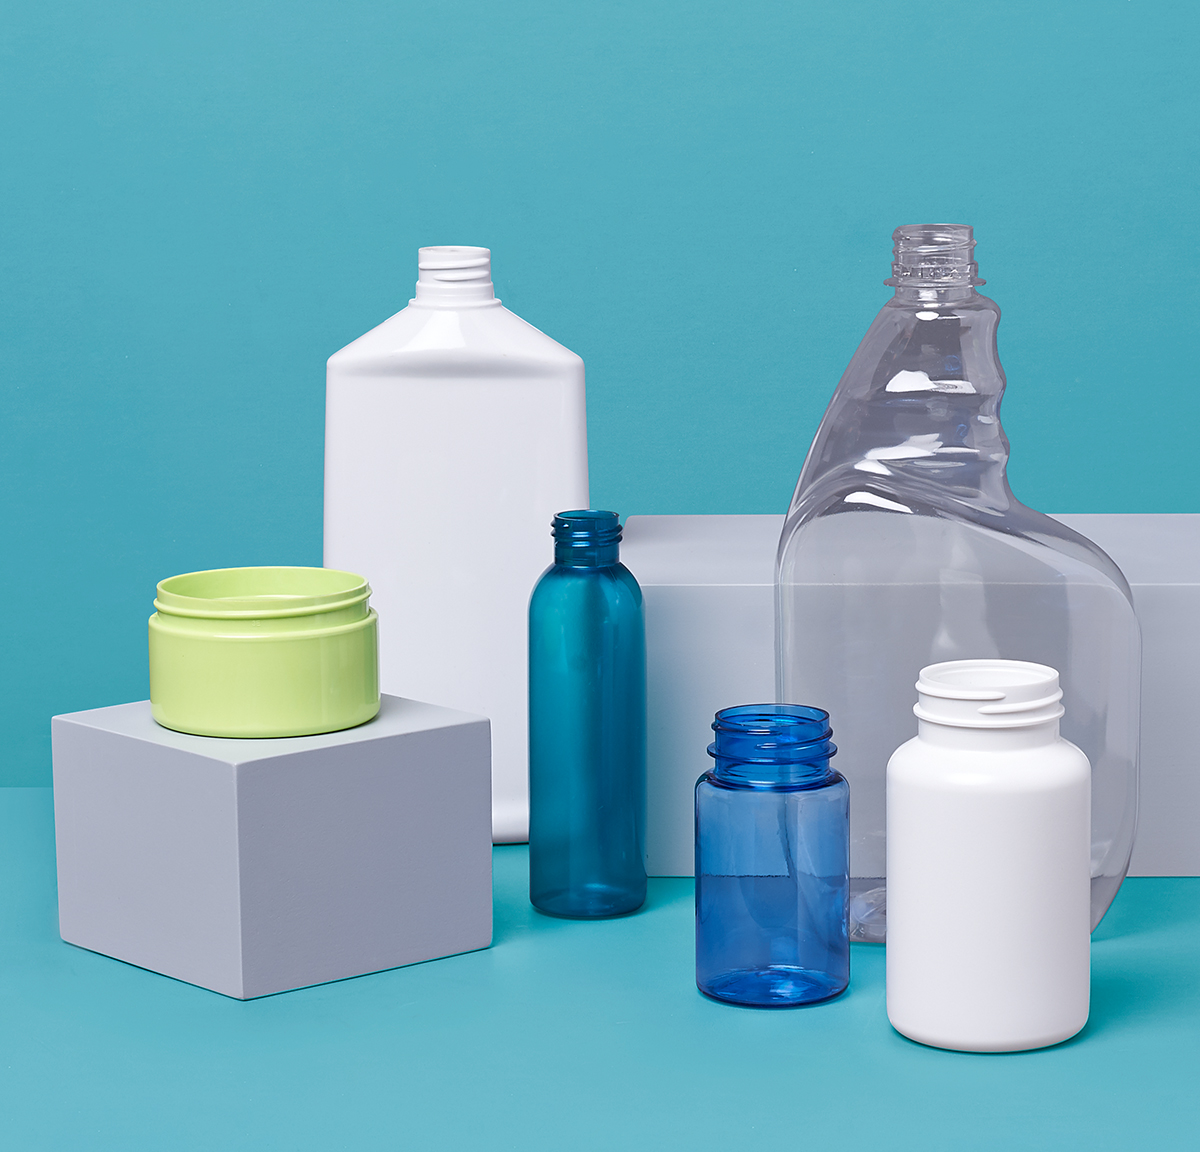 Photo of various plastic bottles on blue background